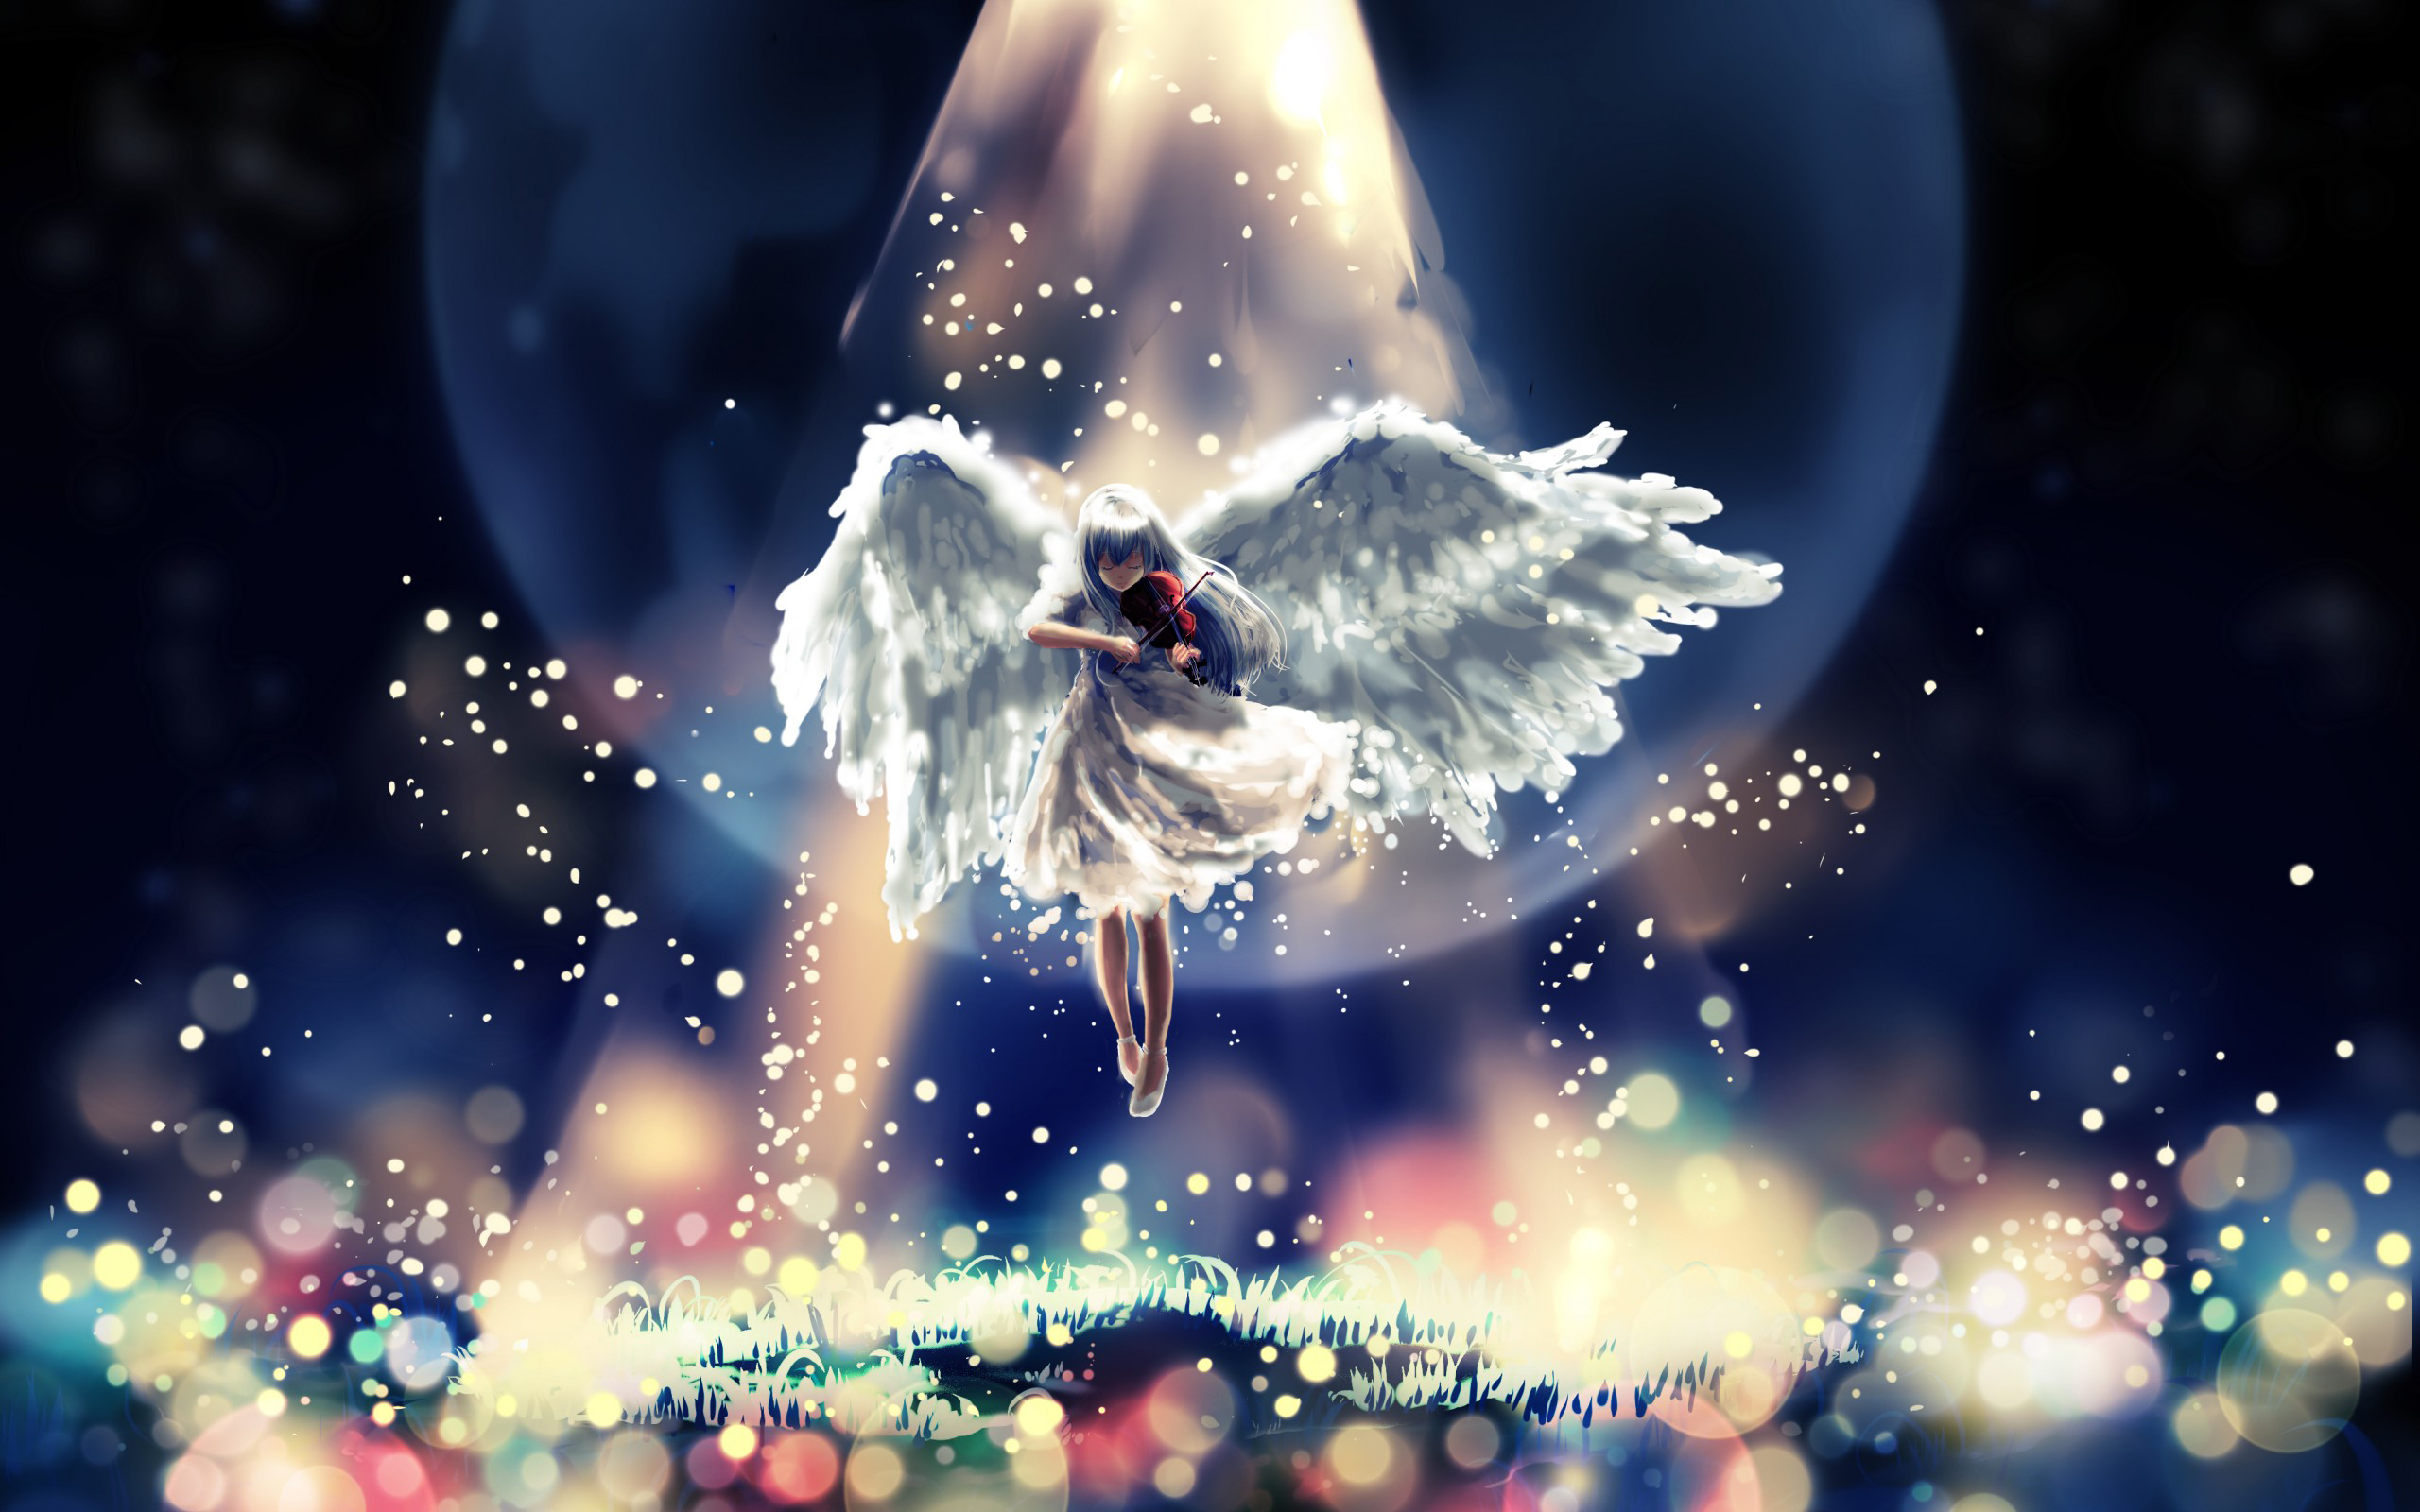 Angel HD Wallpaper Picture Wallpaper Cartoon image and save image as 2560x1600